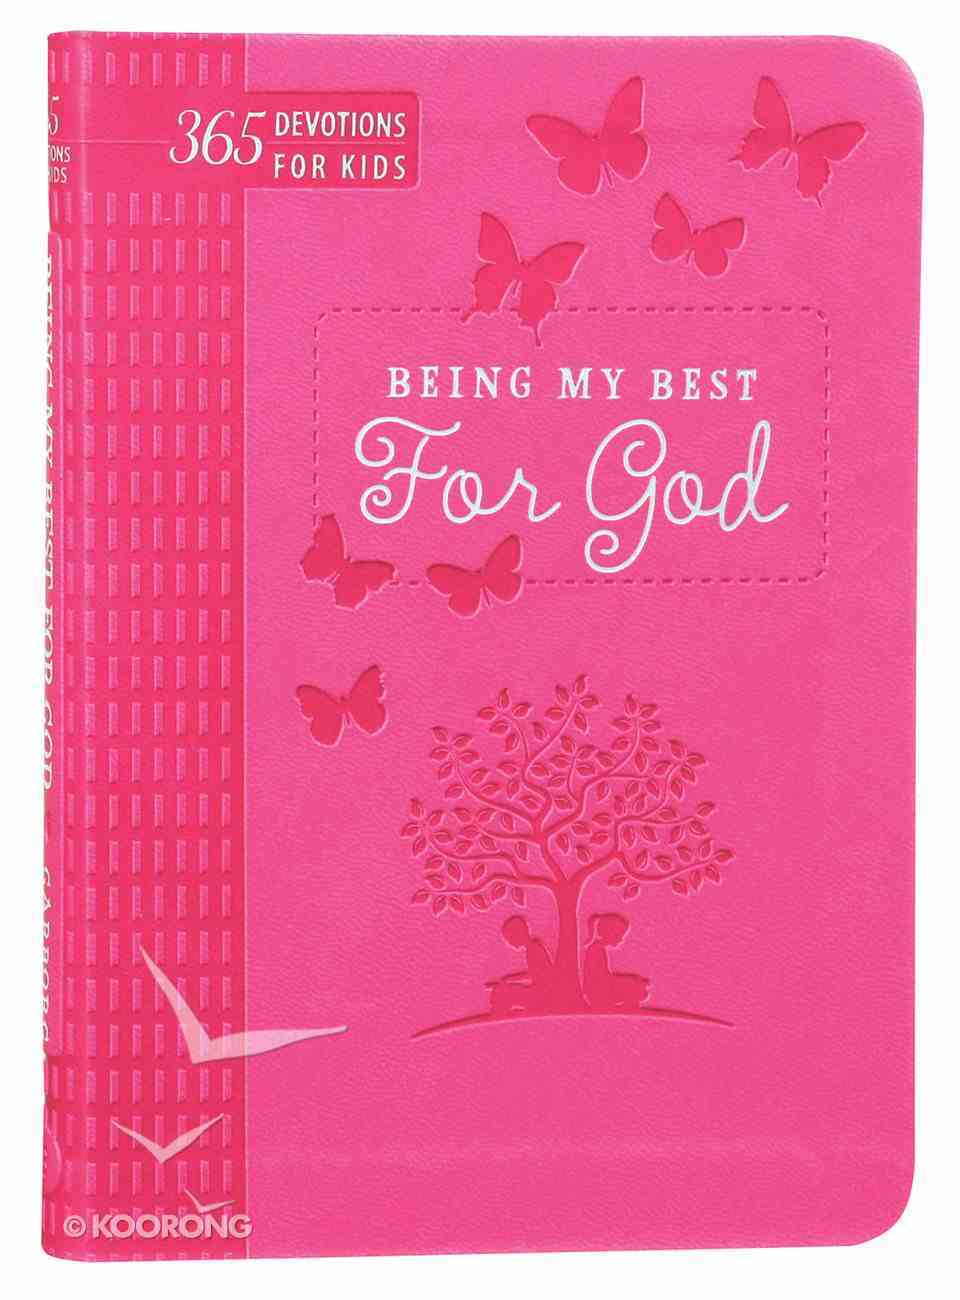 Being My Best For God: 365 Devotions For Kids (Pink) Imitation Leather